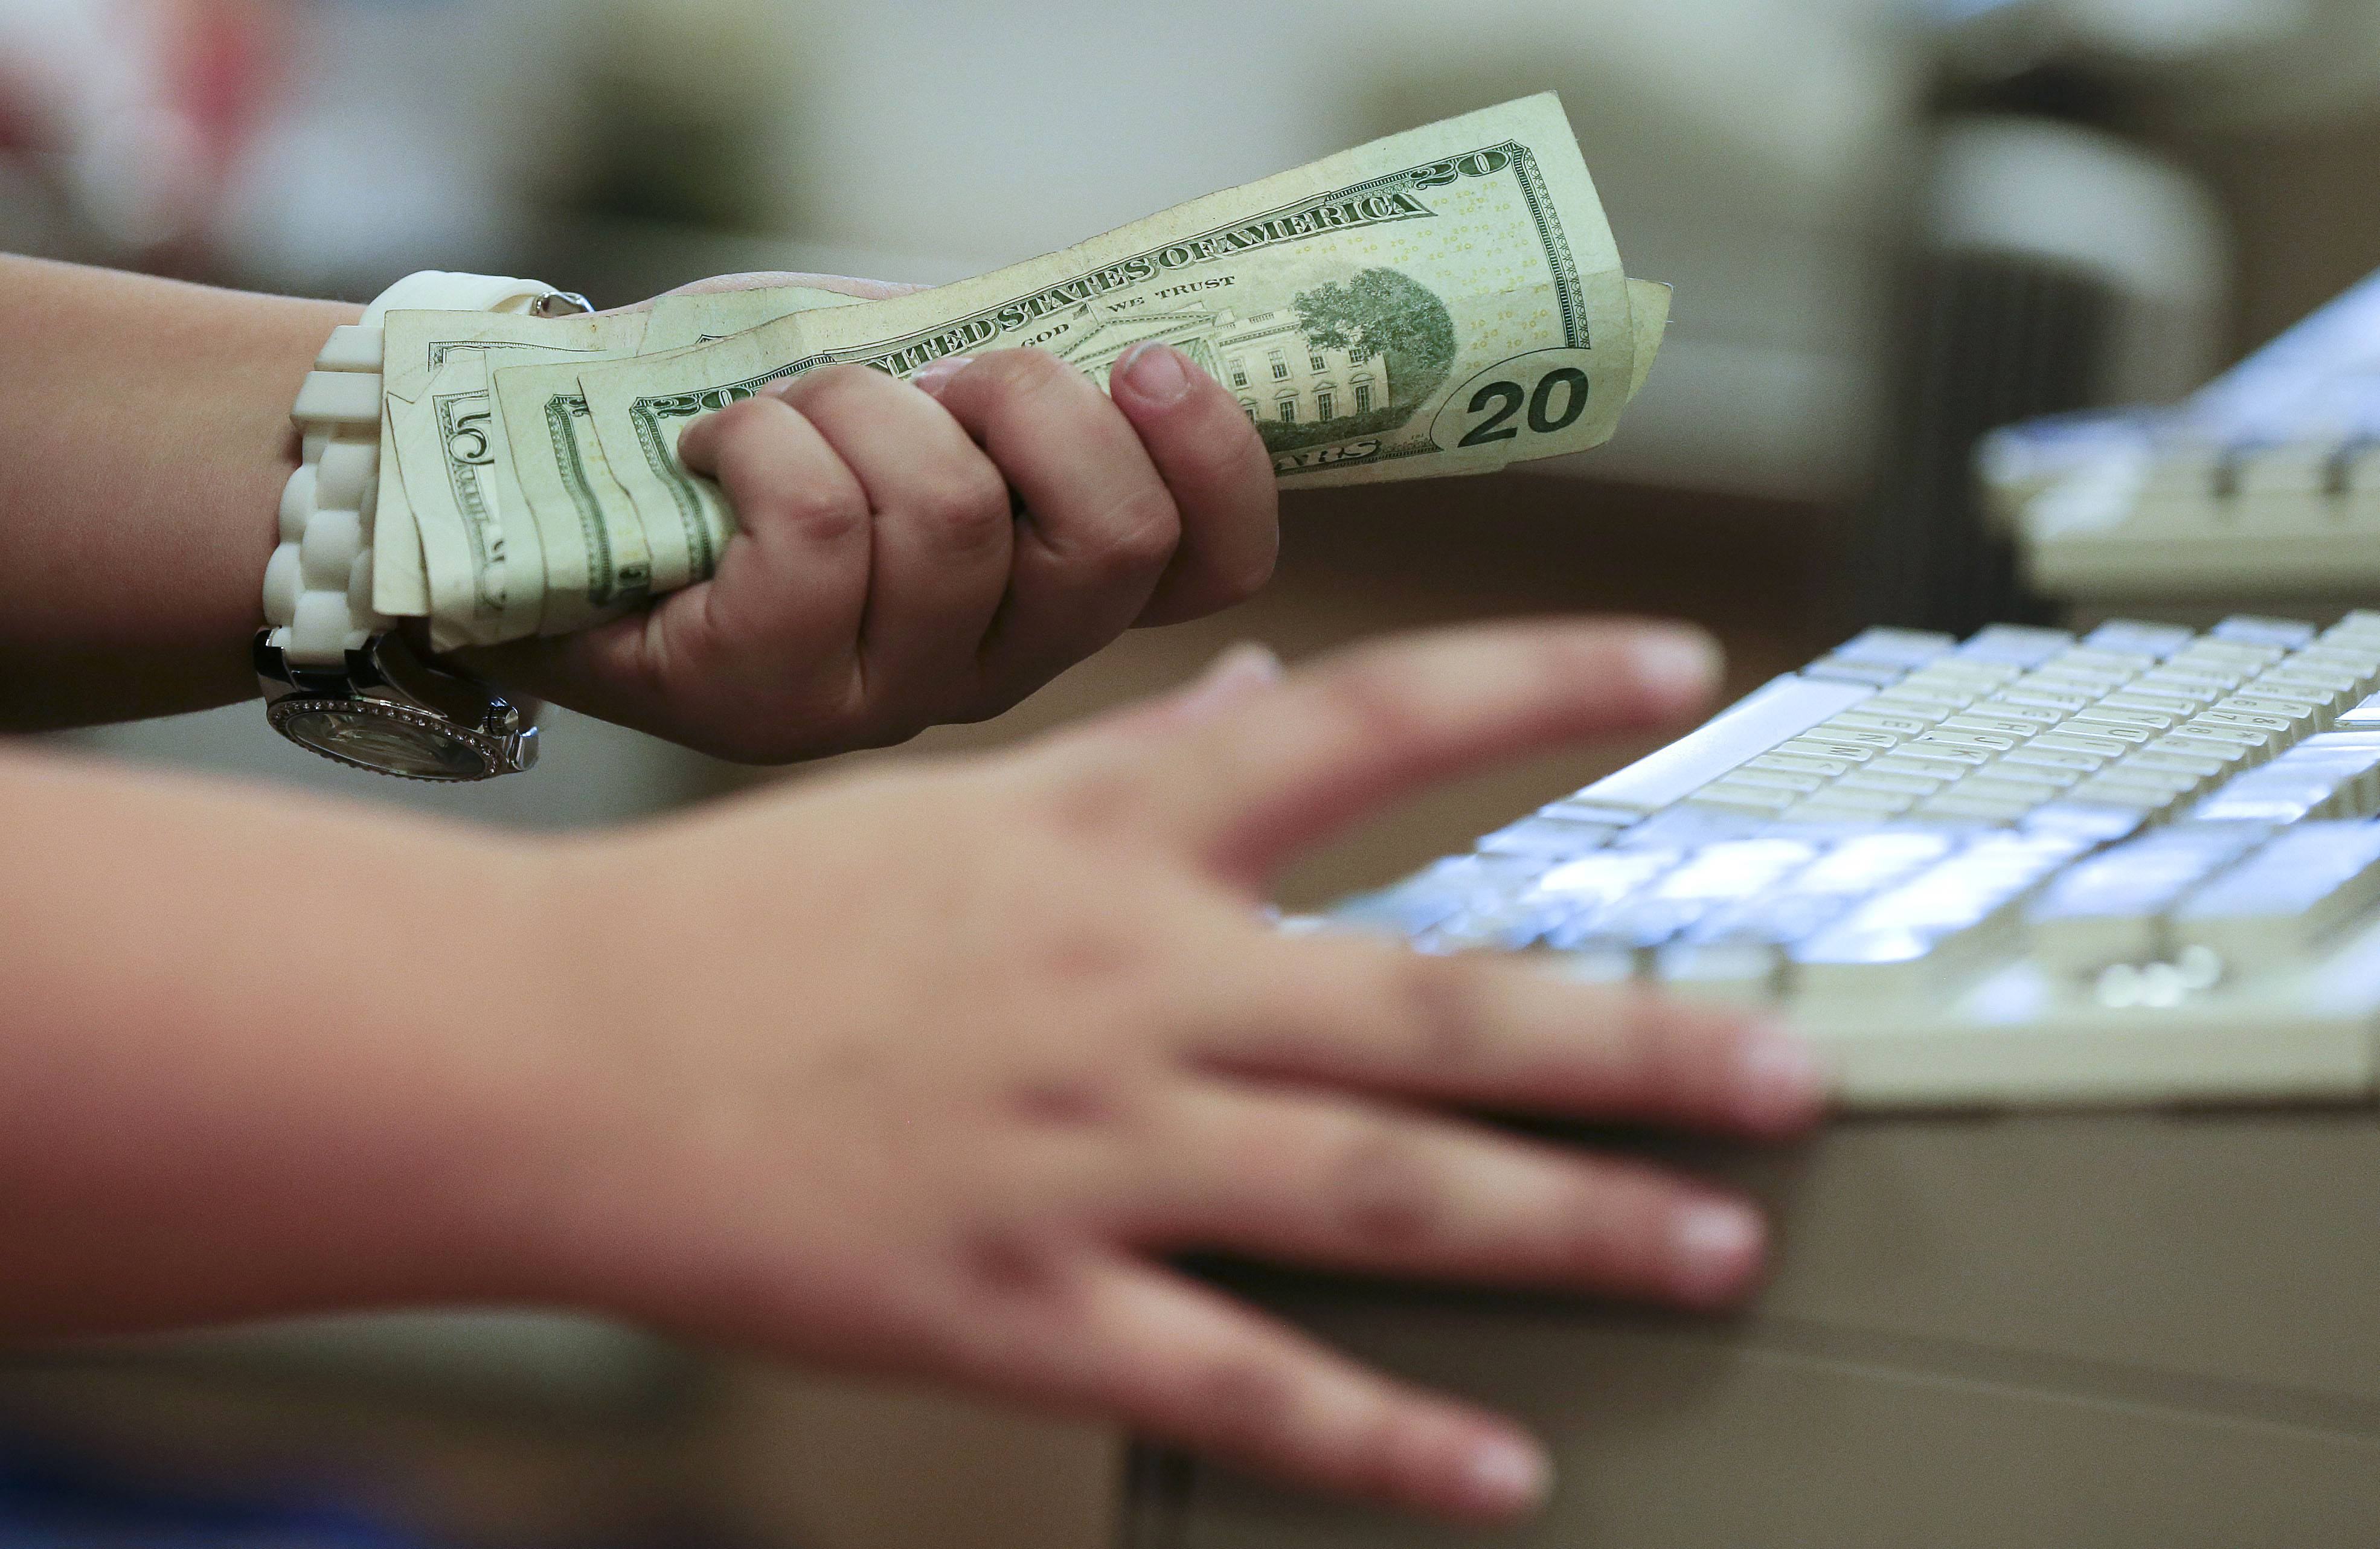 A cashier rings up a cash sale at a Sears store, in Las Vegas. The University of Michigan's index of consumer sentiment for May came in lower than expected friday.